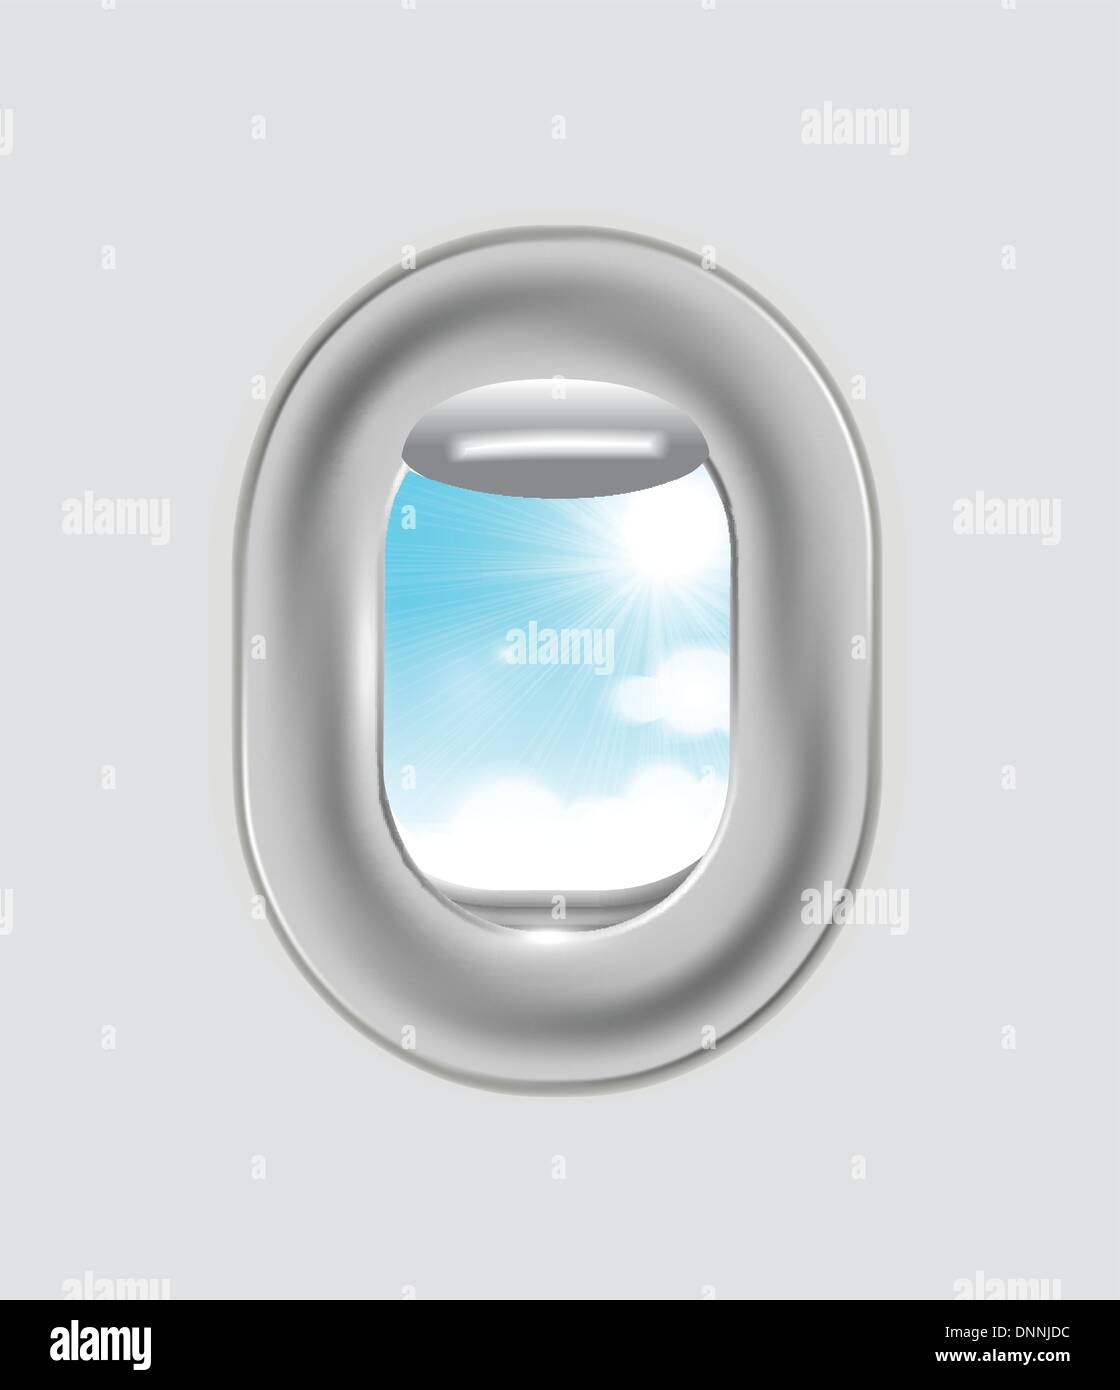 Clouds and sky as seen through window of an aircraft - Stock Vector